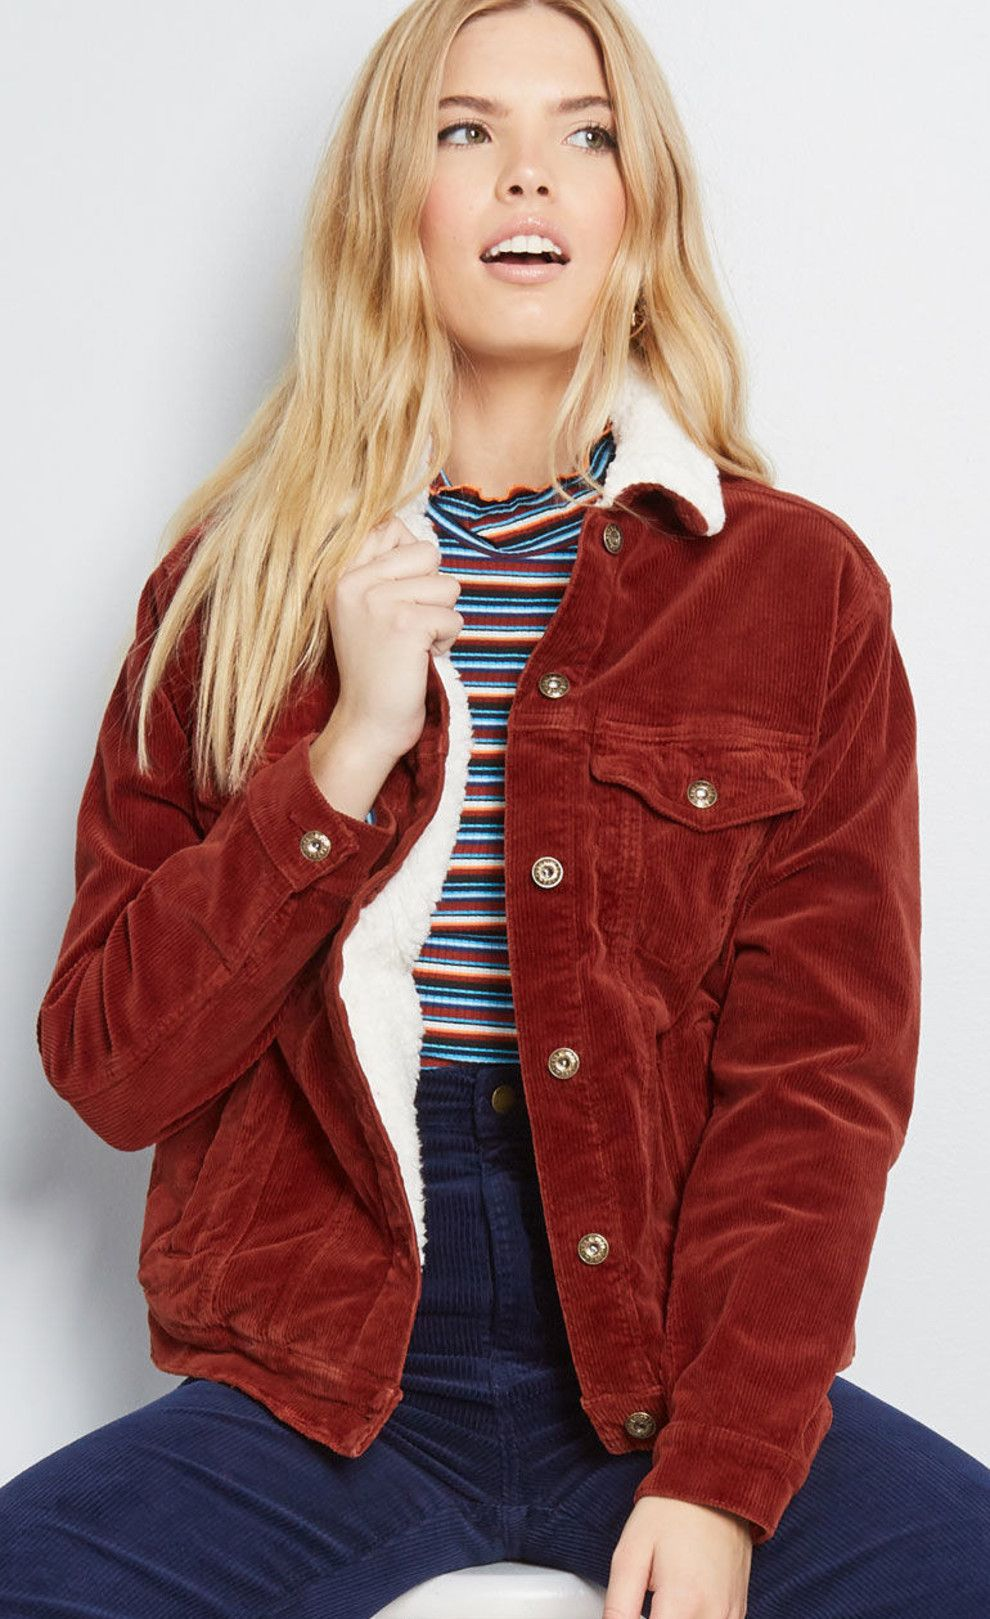 Just 24 Things From Modcloth You Ll Want To Wear This Winter Red Outerwear Jacket Outfits Cool Jackets [ 1619 x 990 Pixel ]